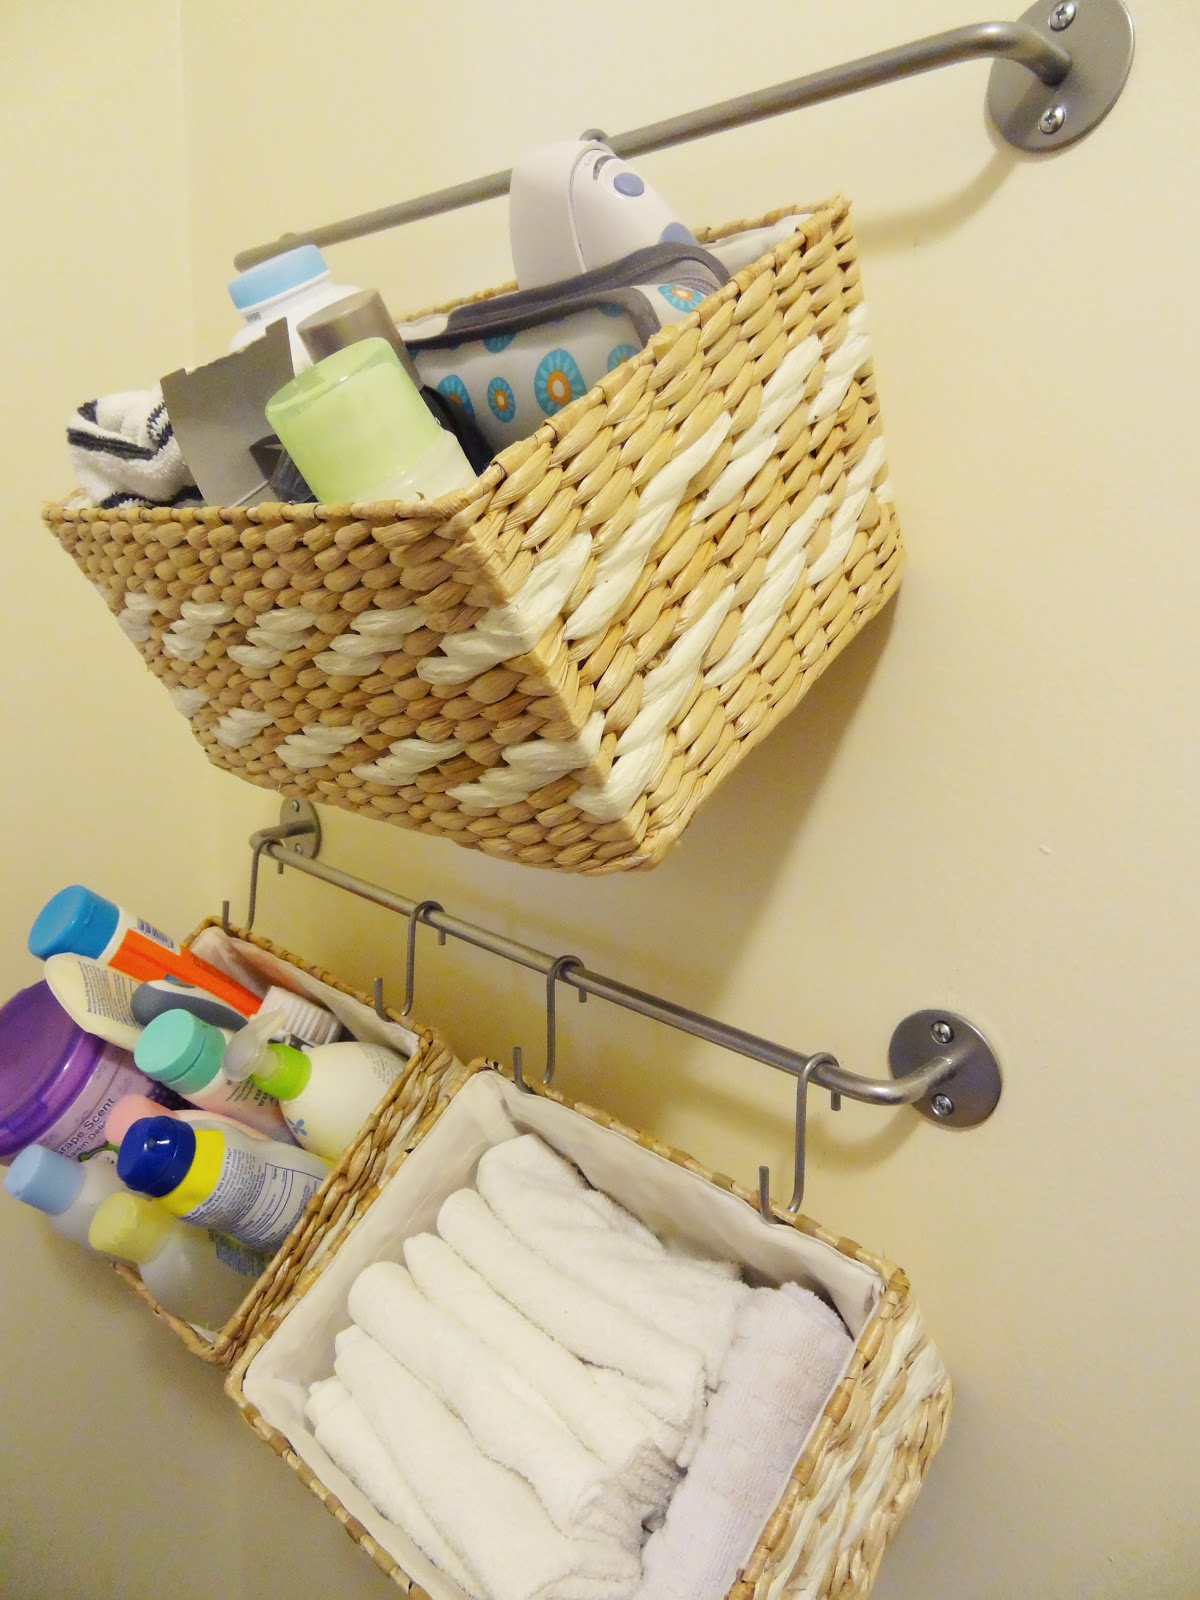 Diy Hanging Bathroom Storage Baskets Revamp Homegoods